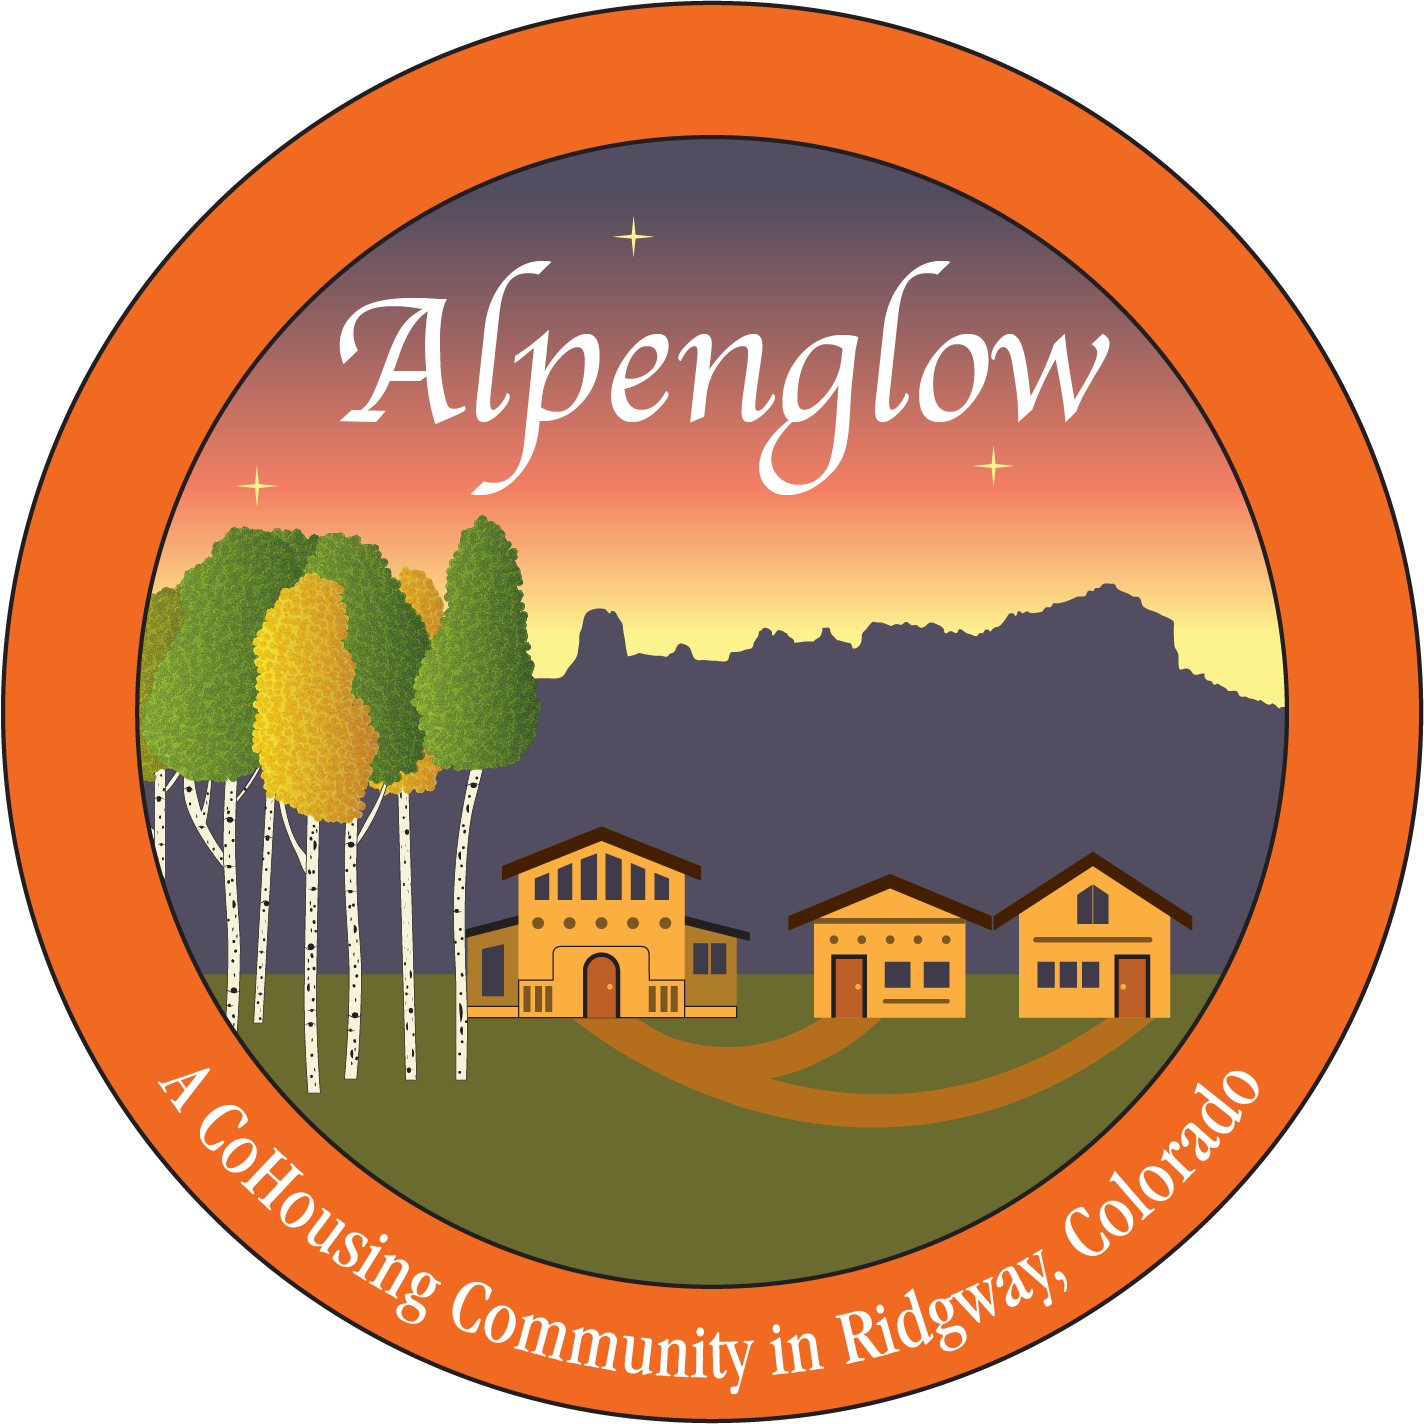 Meet our members alpenglow. Heat clipart trail heart